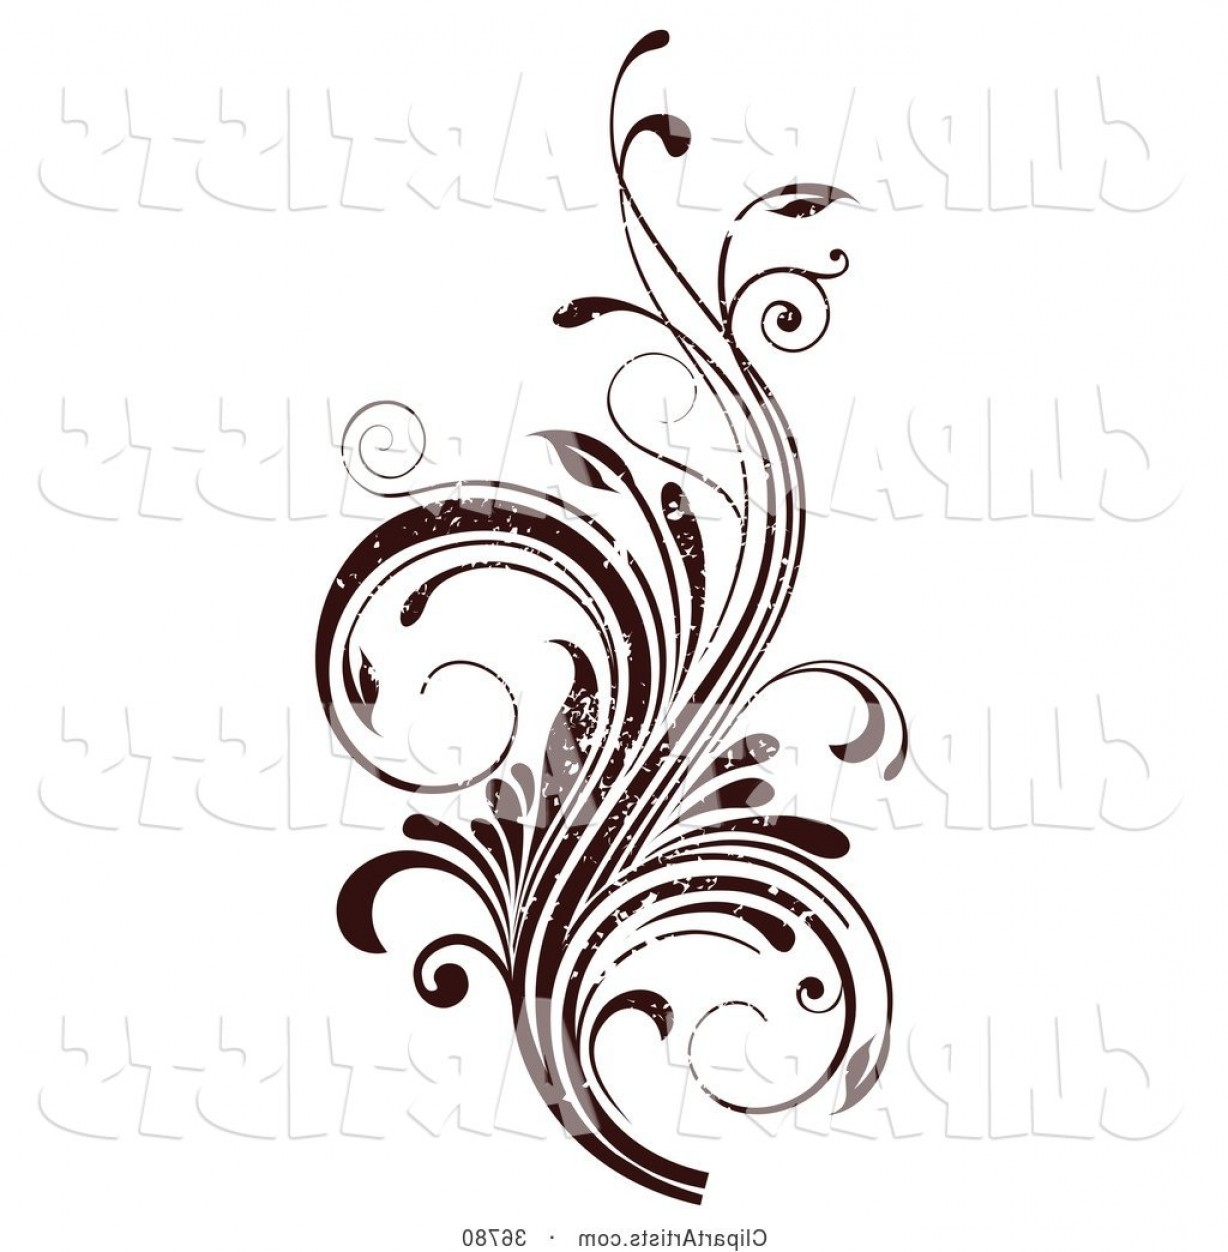 Grunge Scroll Vector Design: Vector Clipart Dark Brown Grunge Textured Curly Vine Scroll Design Element By Onfocusmedia